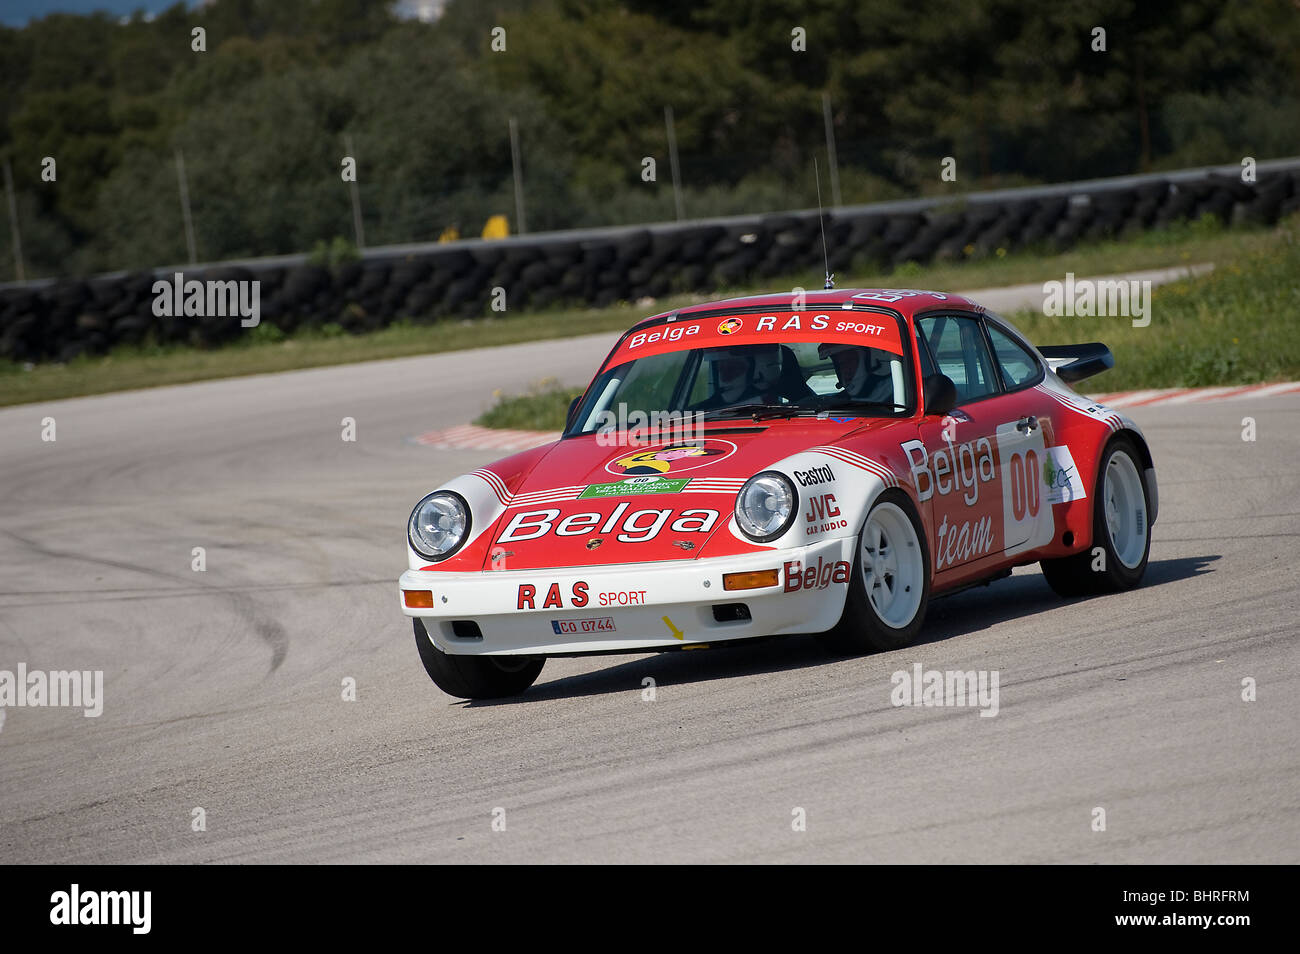 Porsche SC/RS Belga 1984 racing in a classic car rally in Spain - Stock Image